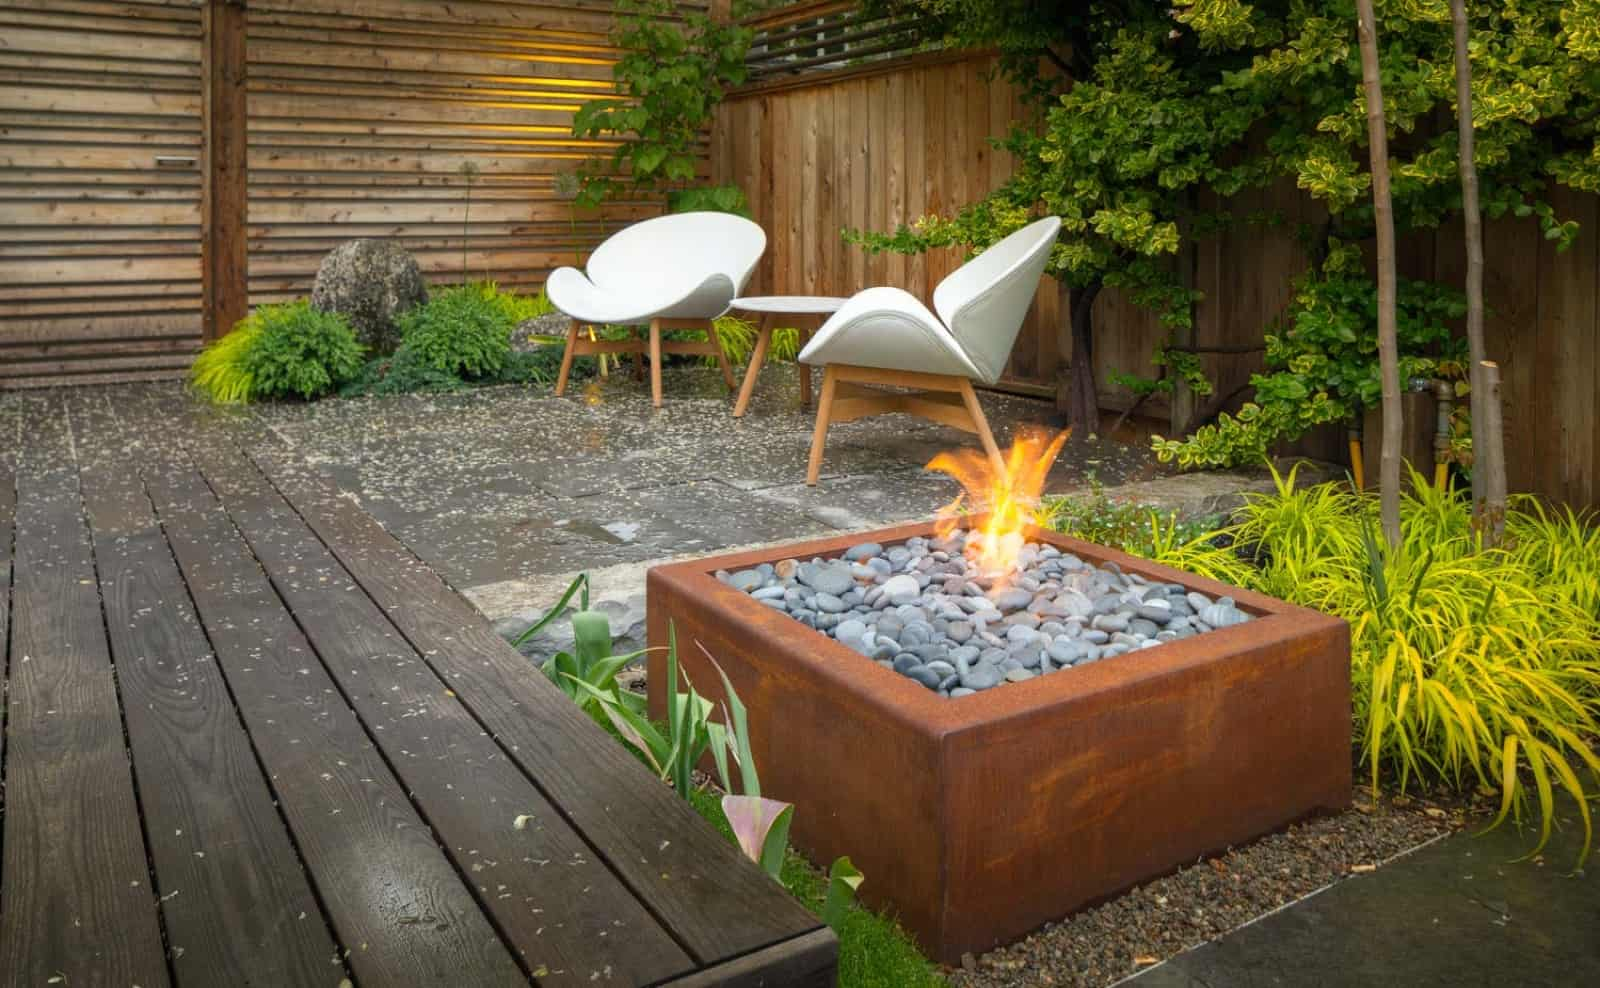 perky-fireplaces-paloform-world-with-fire-pits-and-and-fire-pits_modern-fire-pit